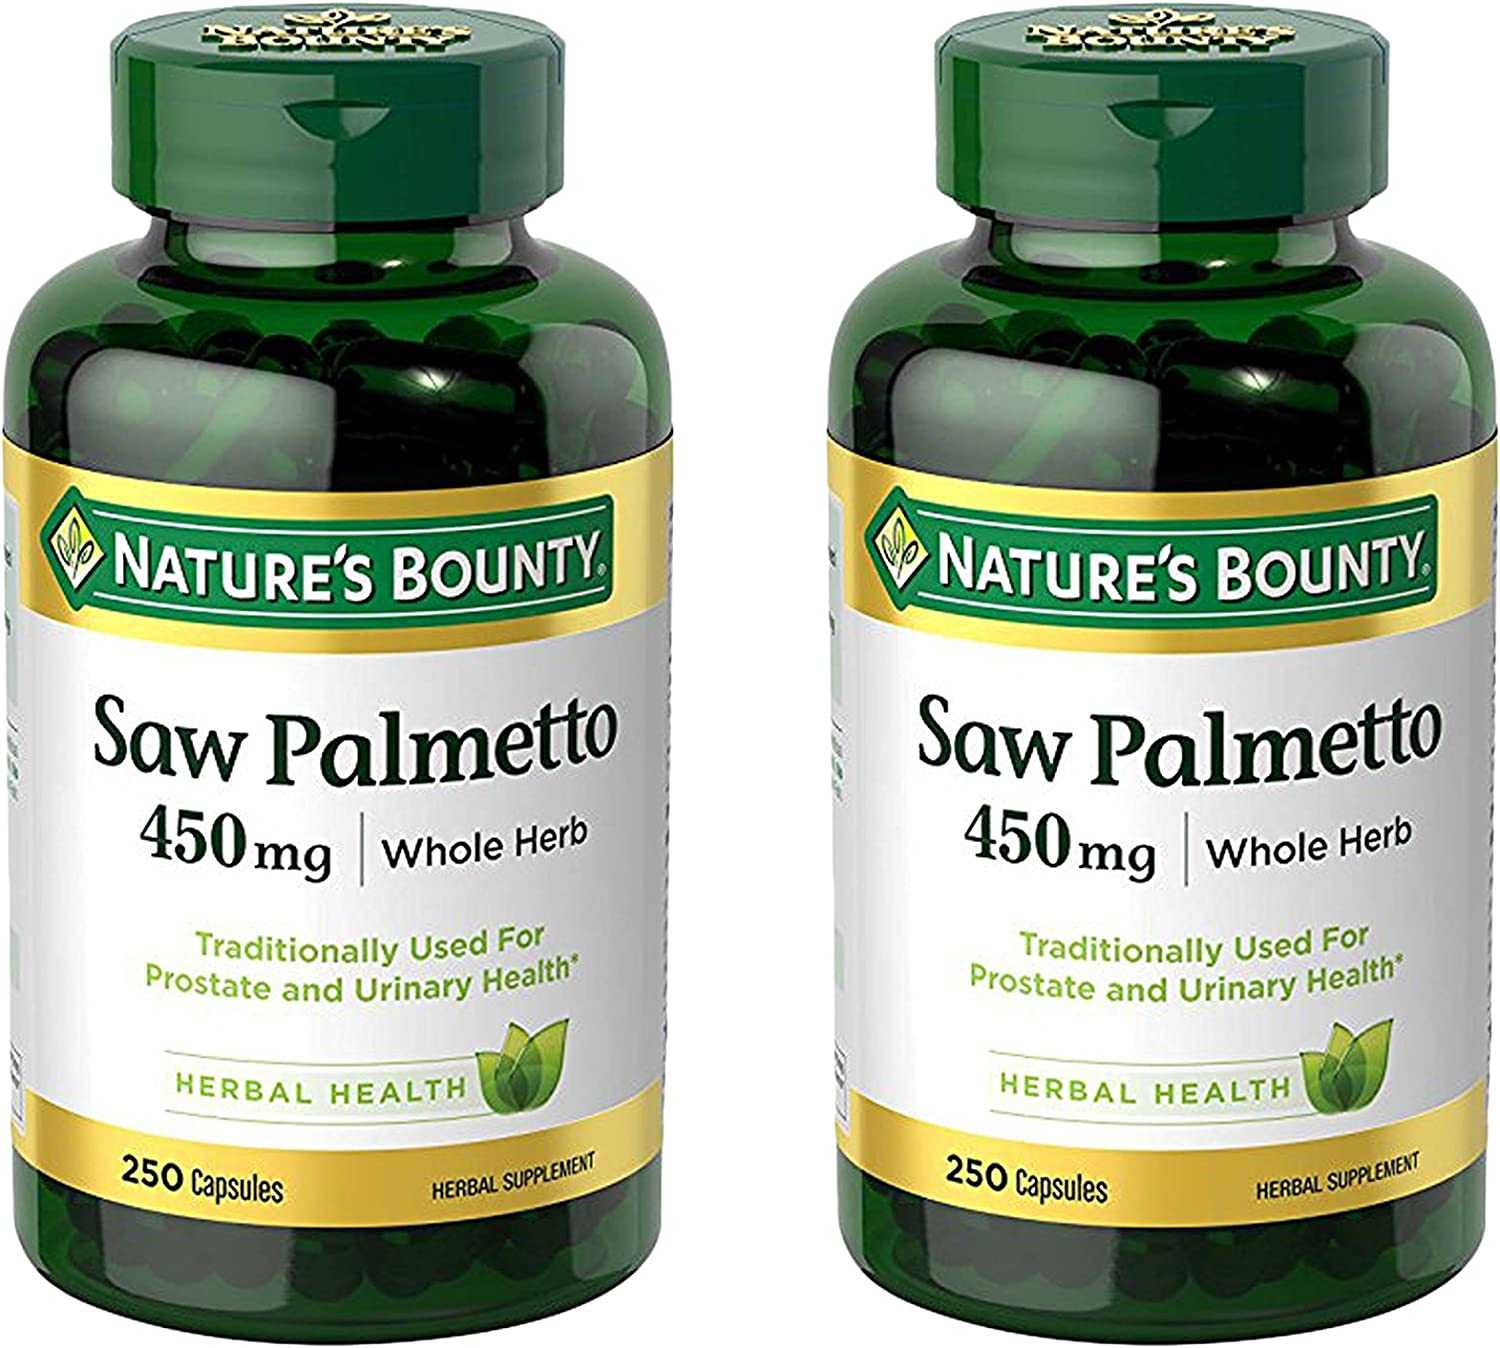 Nature's Bounty Saw Palmetto 450 mg Capsules 250 ea (Pack of 2)